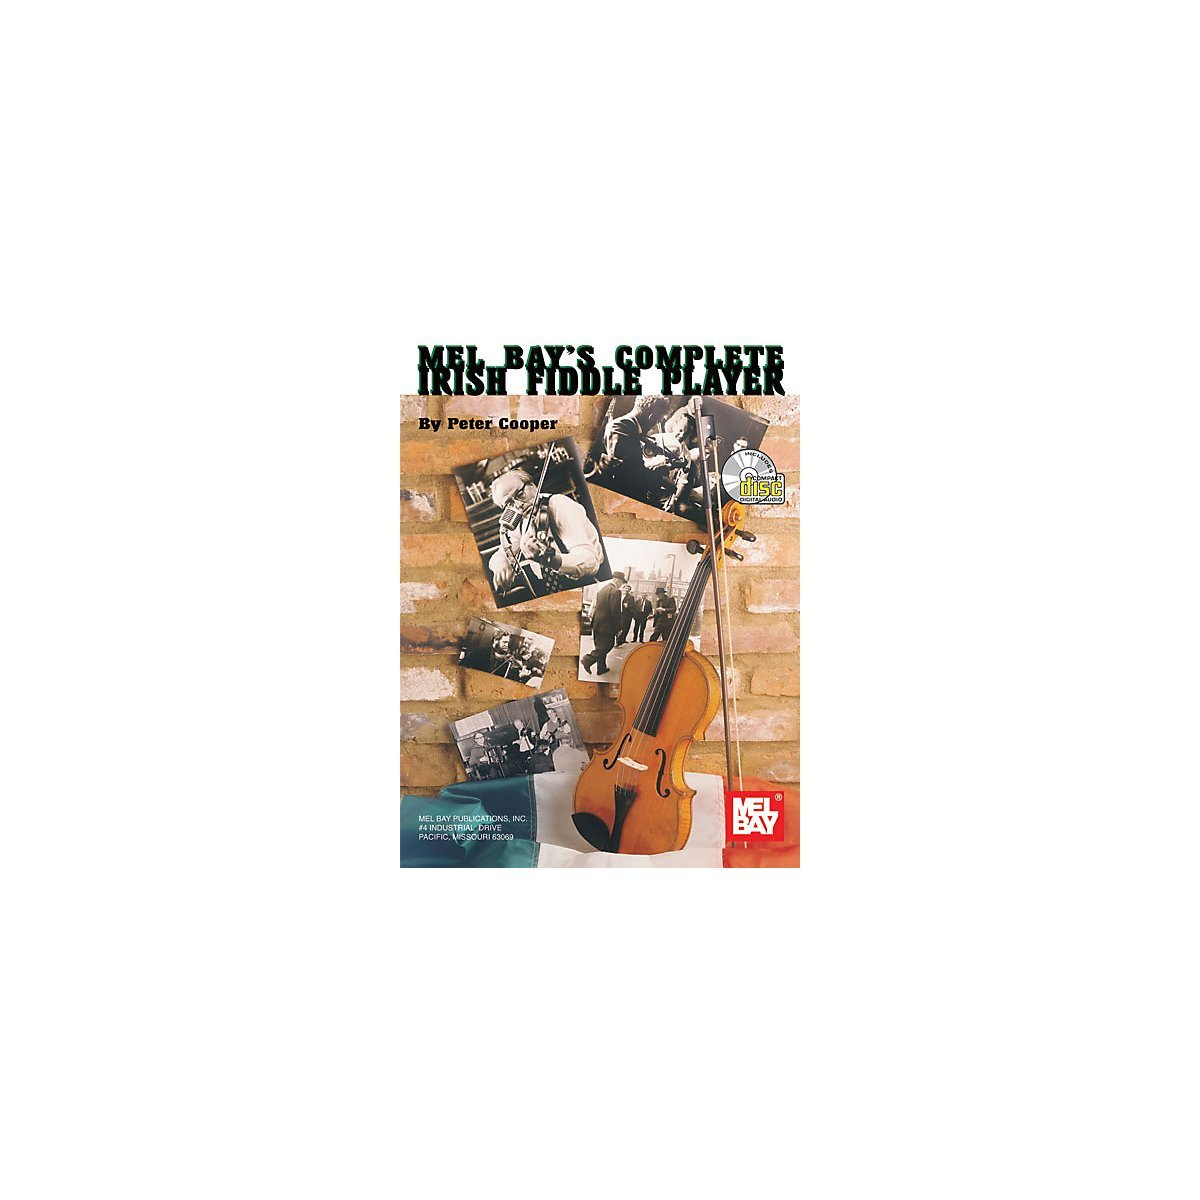 Mel Bay Complete Irish Fiddle Player Book Cd Pckg, Ship from America by